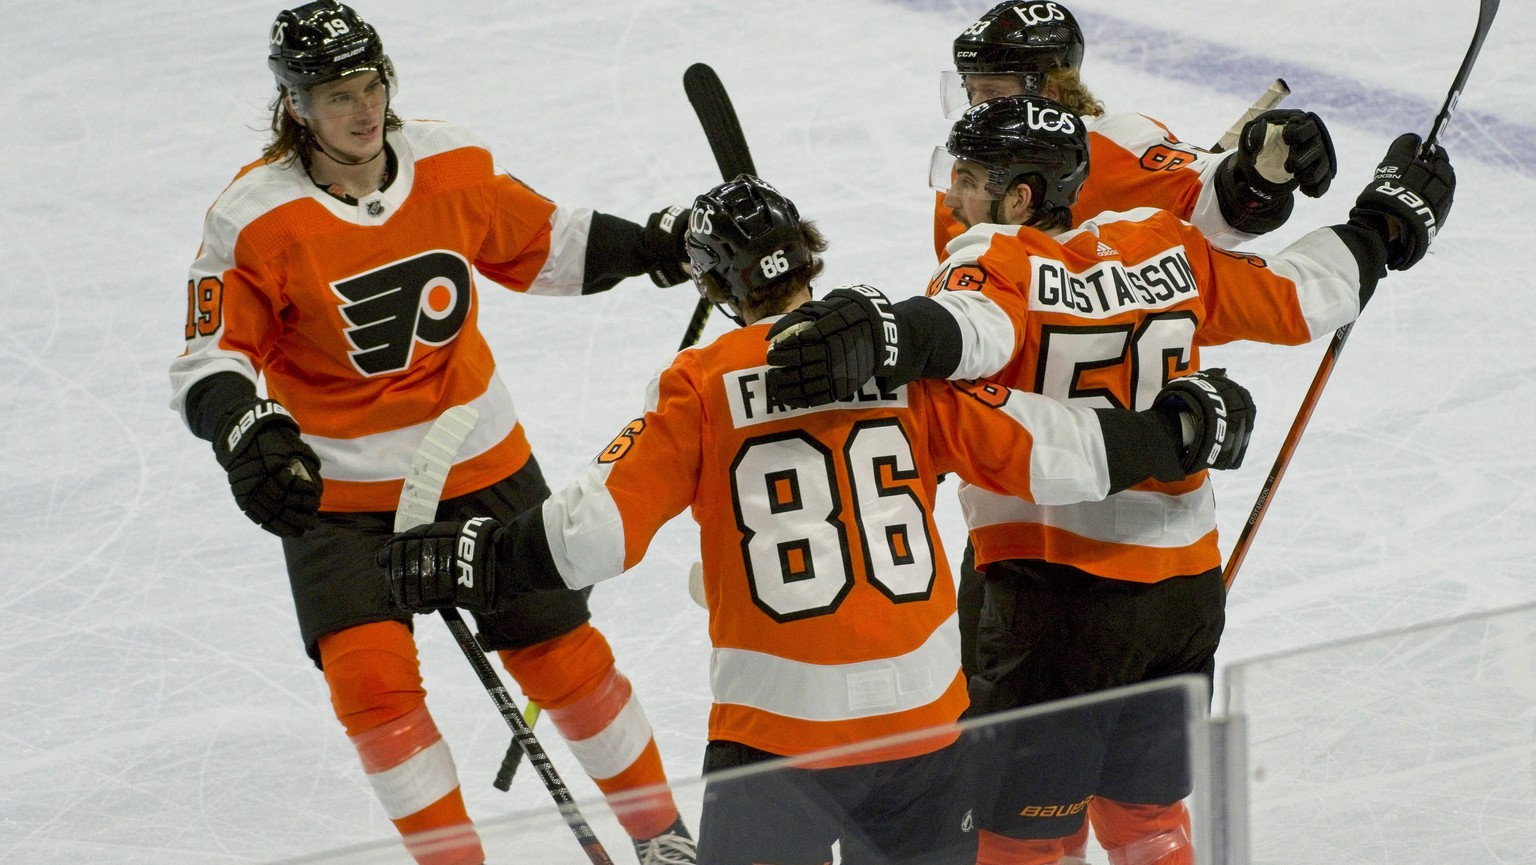 PHILADELPHIA, PA - JANUARY 13: Philadelphia Flyers Center Nolan Patrick 19 celebrates his goal during the game between the Pittsburg Penquins and the Philadelphia Flyers on January 13, 2021 at Wells Fargo Center in Philadelphia, PA. Photo by Andy Lewis/Icon Sportswire NHL, Eishockey Herren, USA JAN 13 Penguins at Flyers Icon210113075